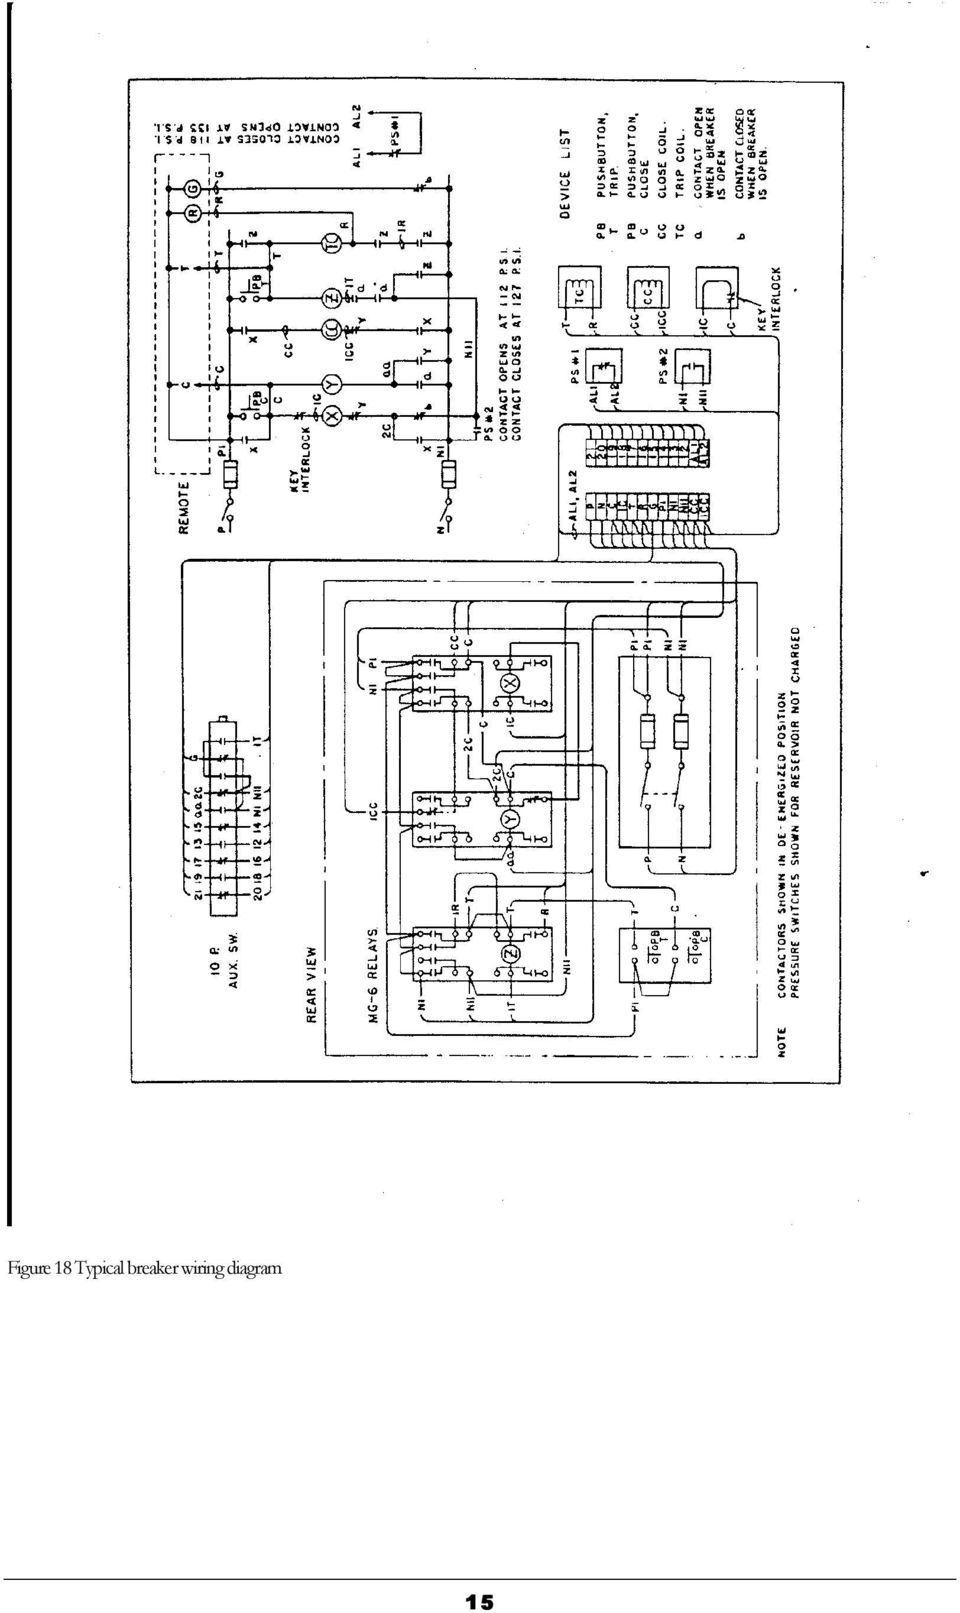 spt 3 wiring diagram best wiring library20 figure 19 typical wiring diagram with three pressure switches 16